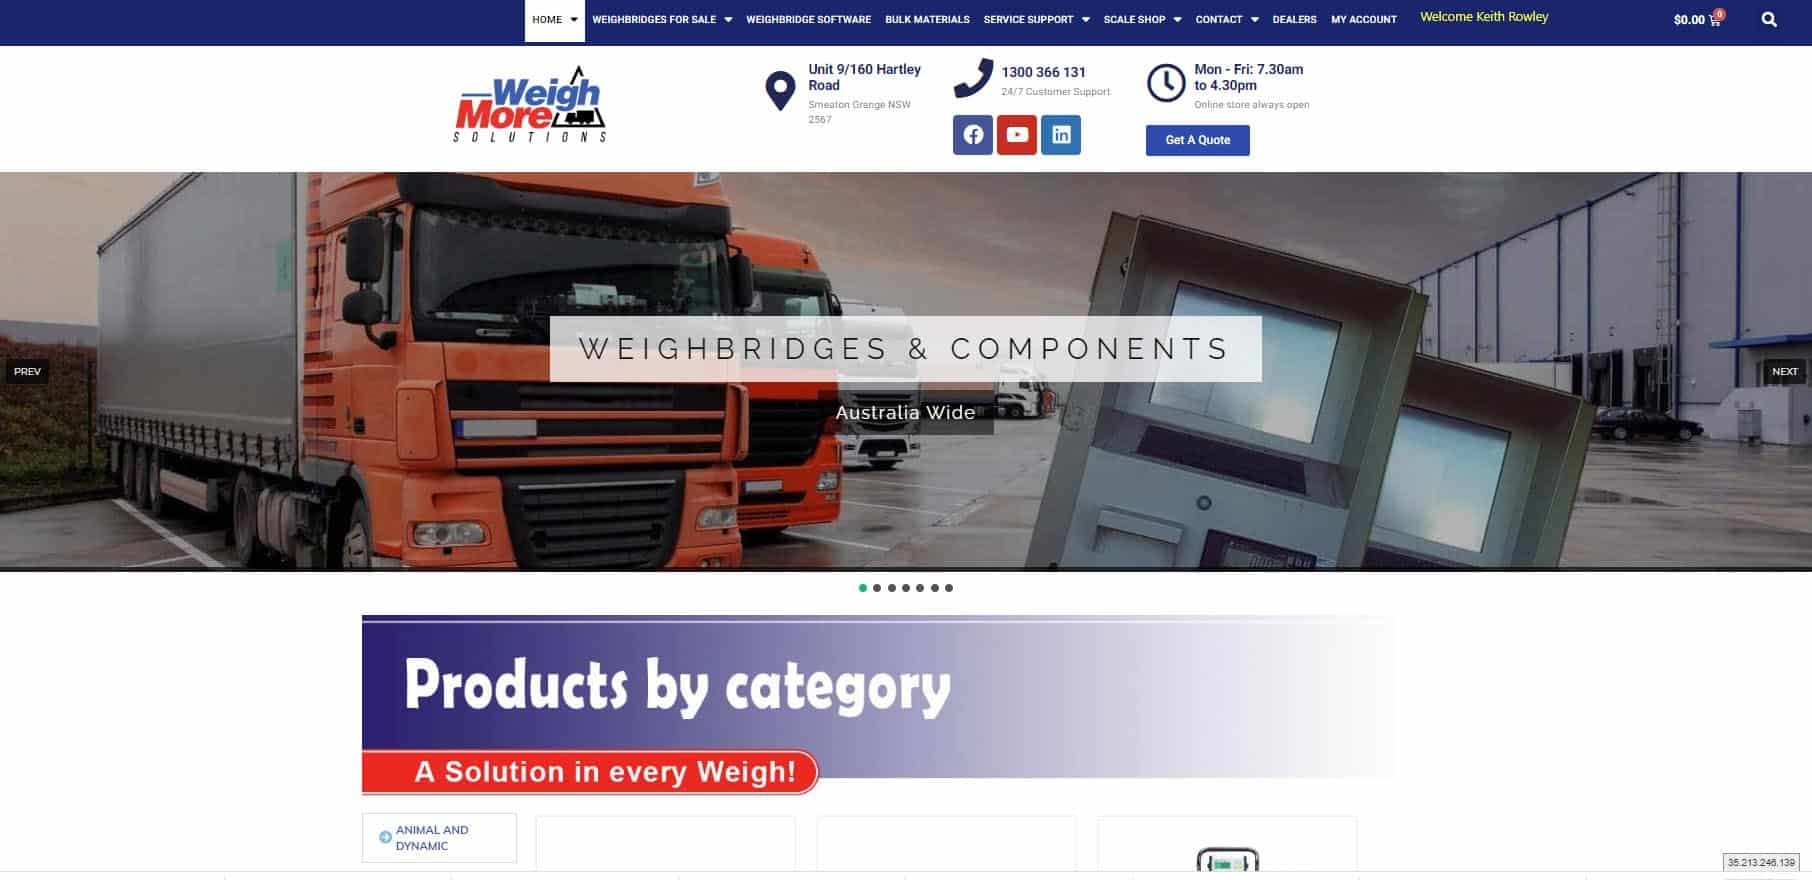 weigh-more systems ulladulla